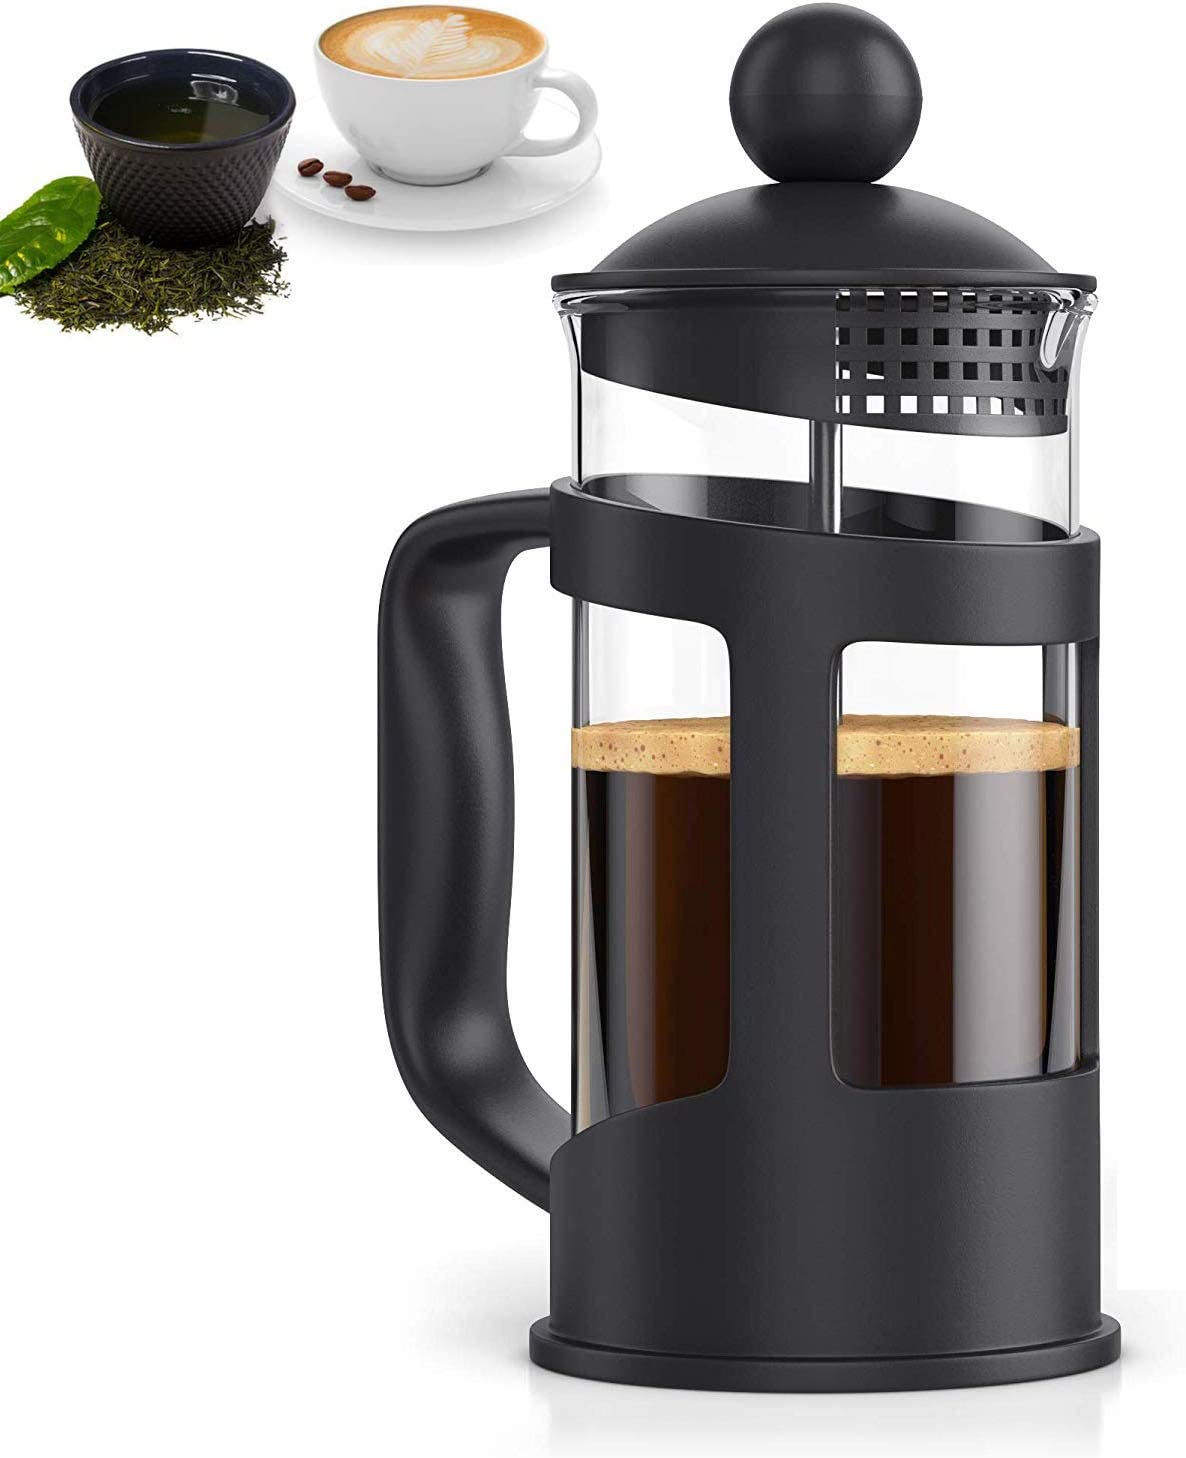 RAINBEAN French Press Coffee Maker, Quality Large Tea Maker, Perfect for Morning Coffee, Maximum Flavor Coffee Brewer with Stainless Steel Filter, 34 oz/1000 ML-Black